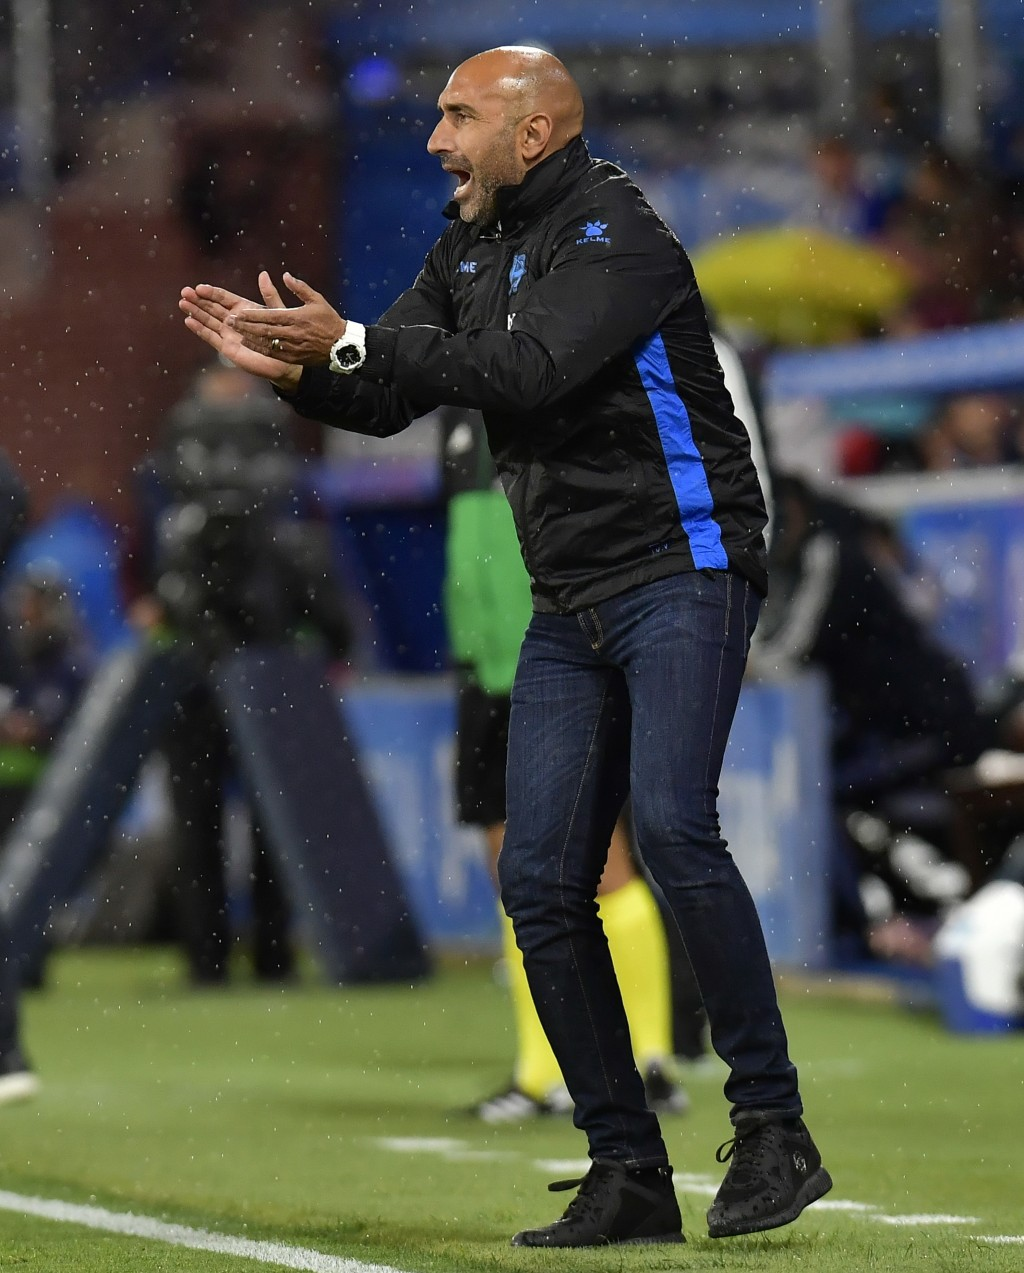 FILE - In this file photo dated Saturday, Oct. 6, 2018, Deportivo Alaves' head manager Abelardo Fernandez, during the Spanish La Liga soccer match aga...